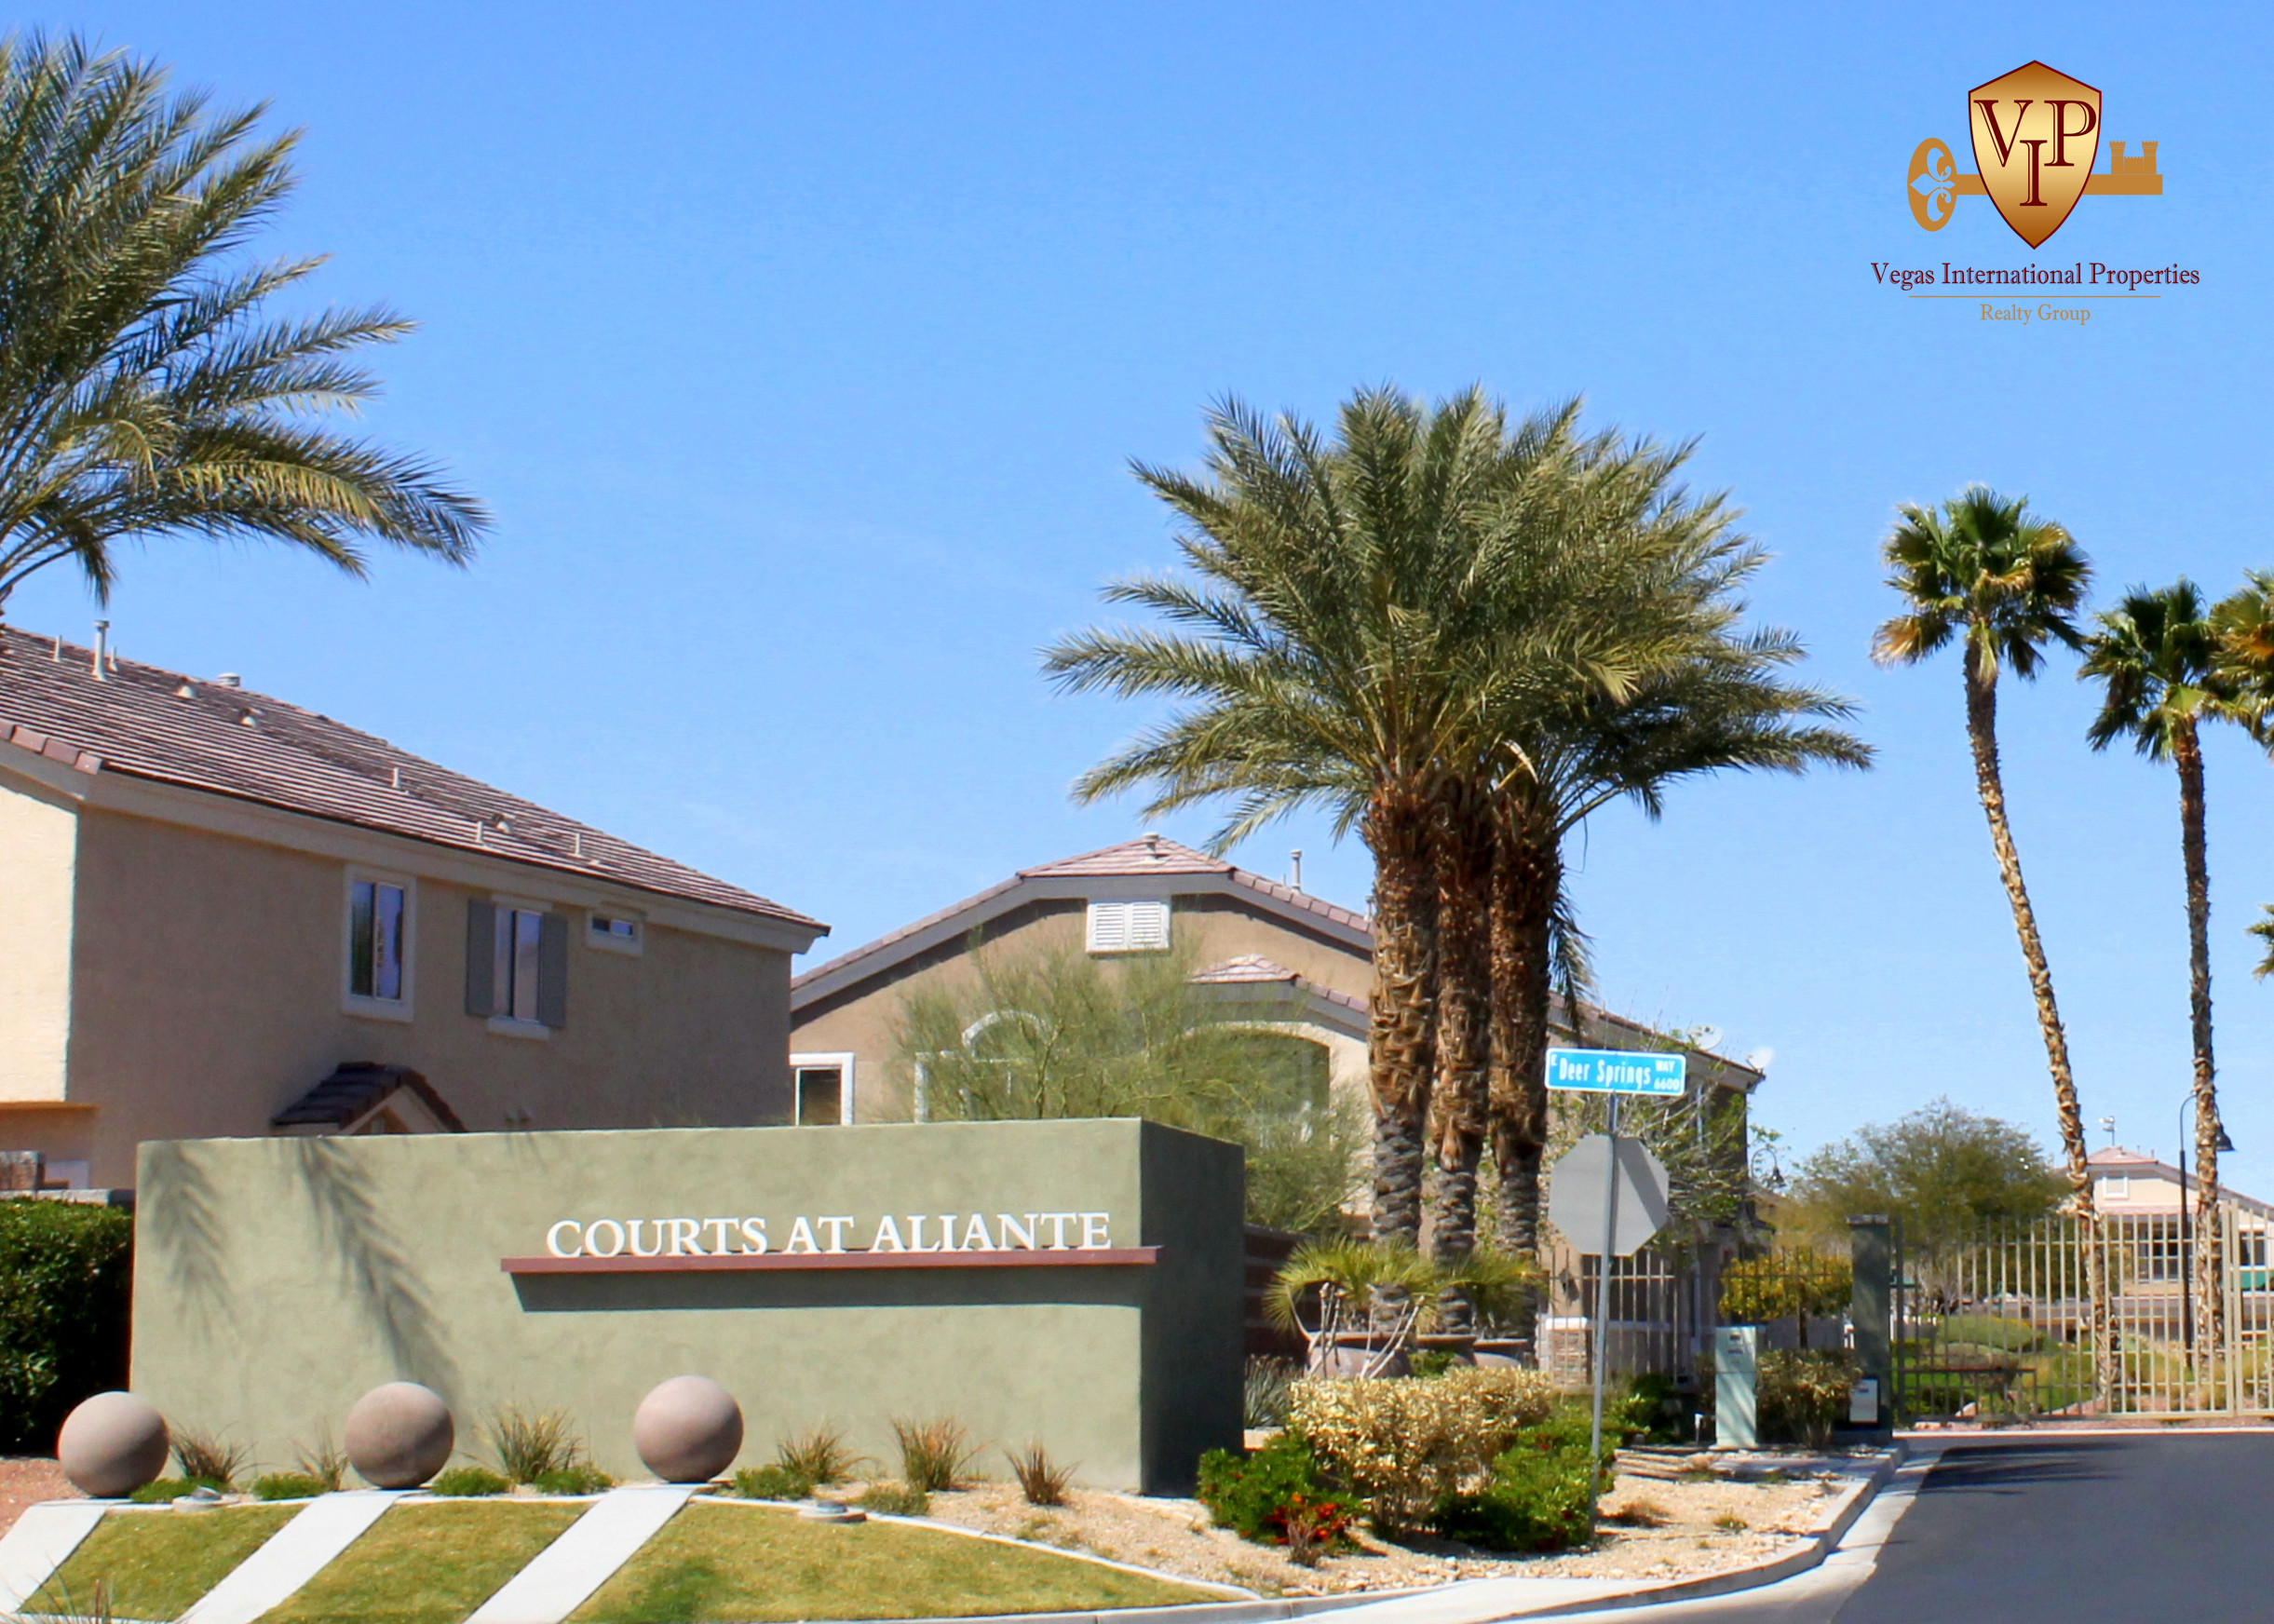 Courtst at Aliante North Las Vegas NV 89084